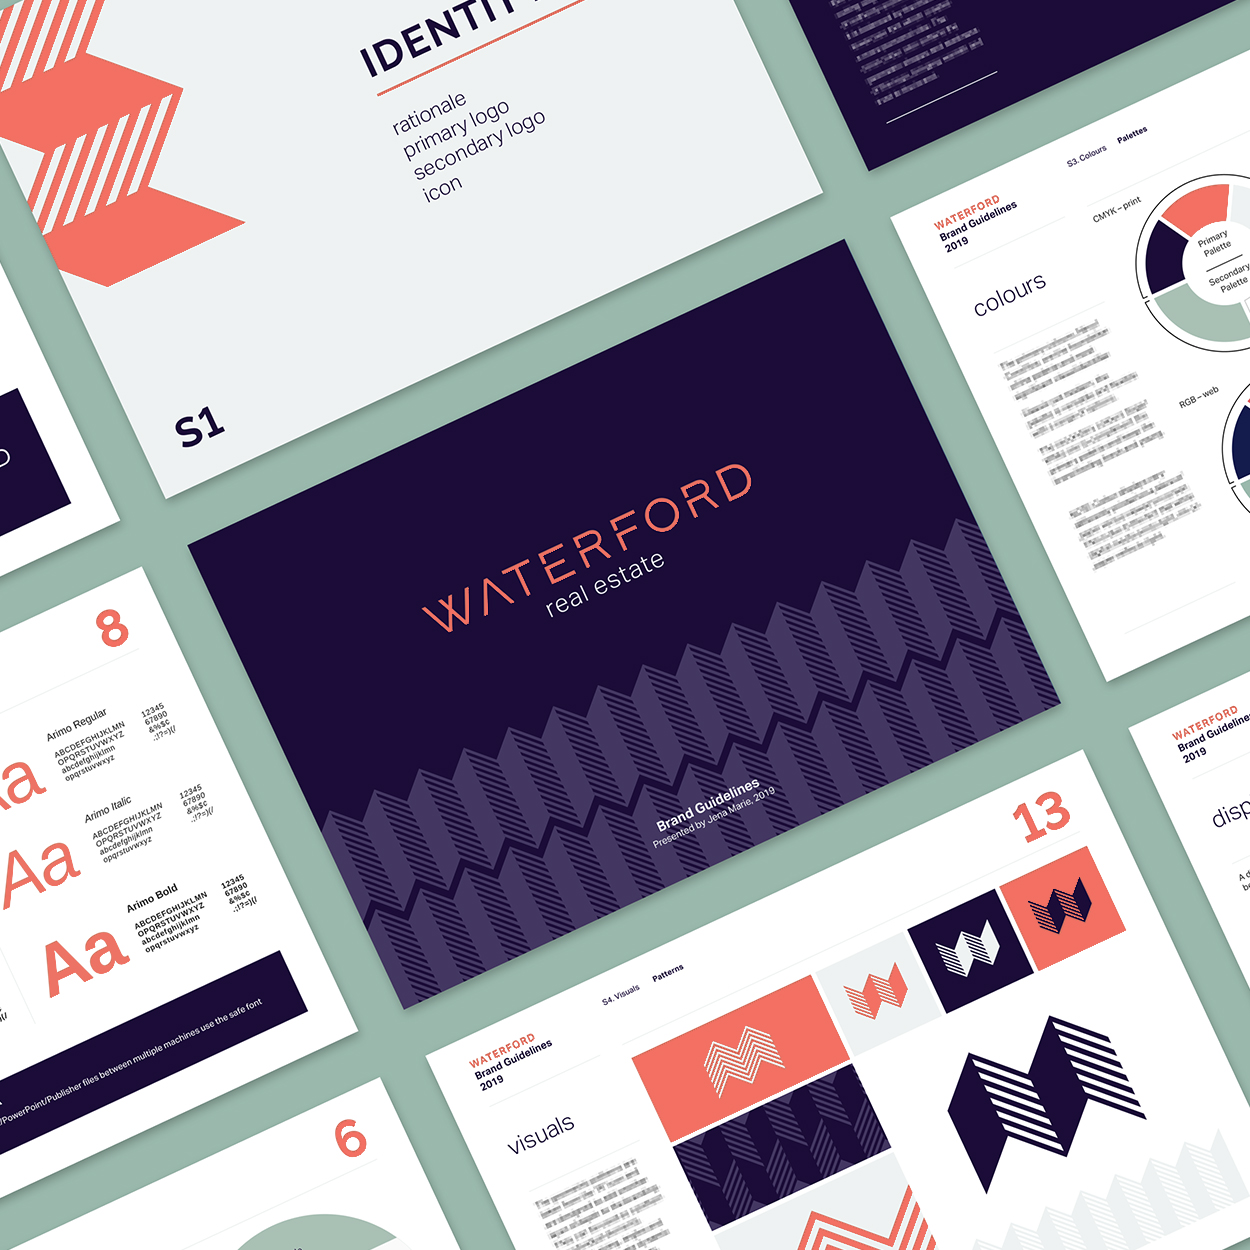 Waterford Real Estate brand guidelines pages layout